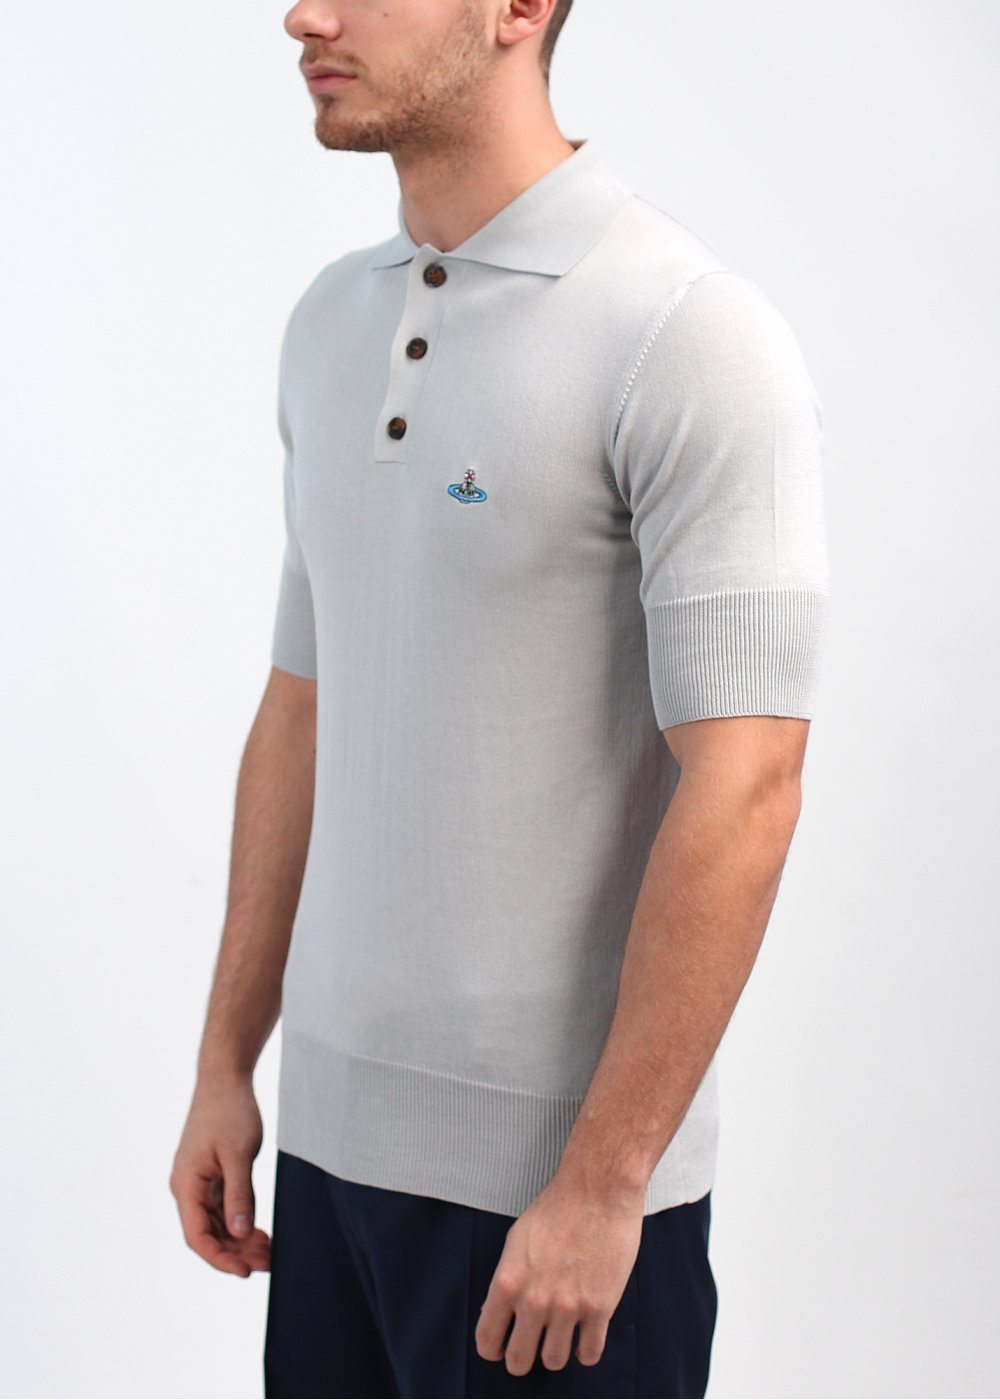 Men's Polos. Incorporate a preppy piece to your wardrobe with the addition of a polo shirt. Find a great selection of men's polos in classic cuts as well as contemporary designs for an updated look.